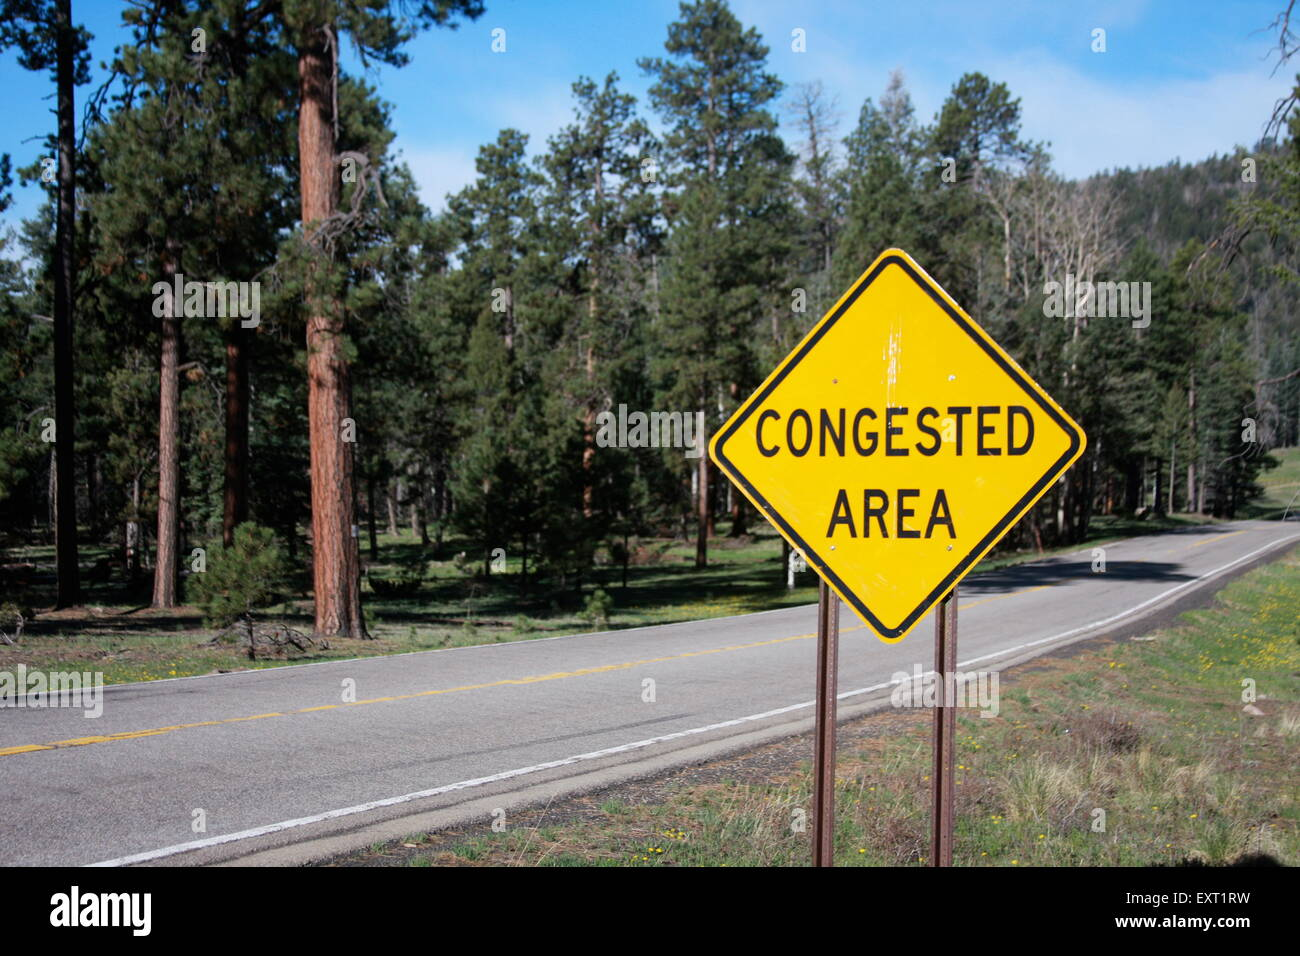 Congested area road sign in New Mexico USA - Stock Image